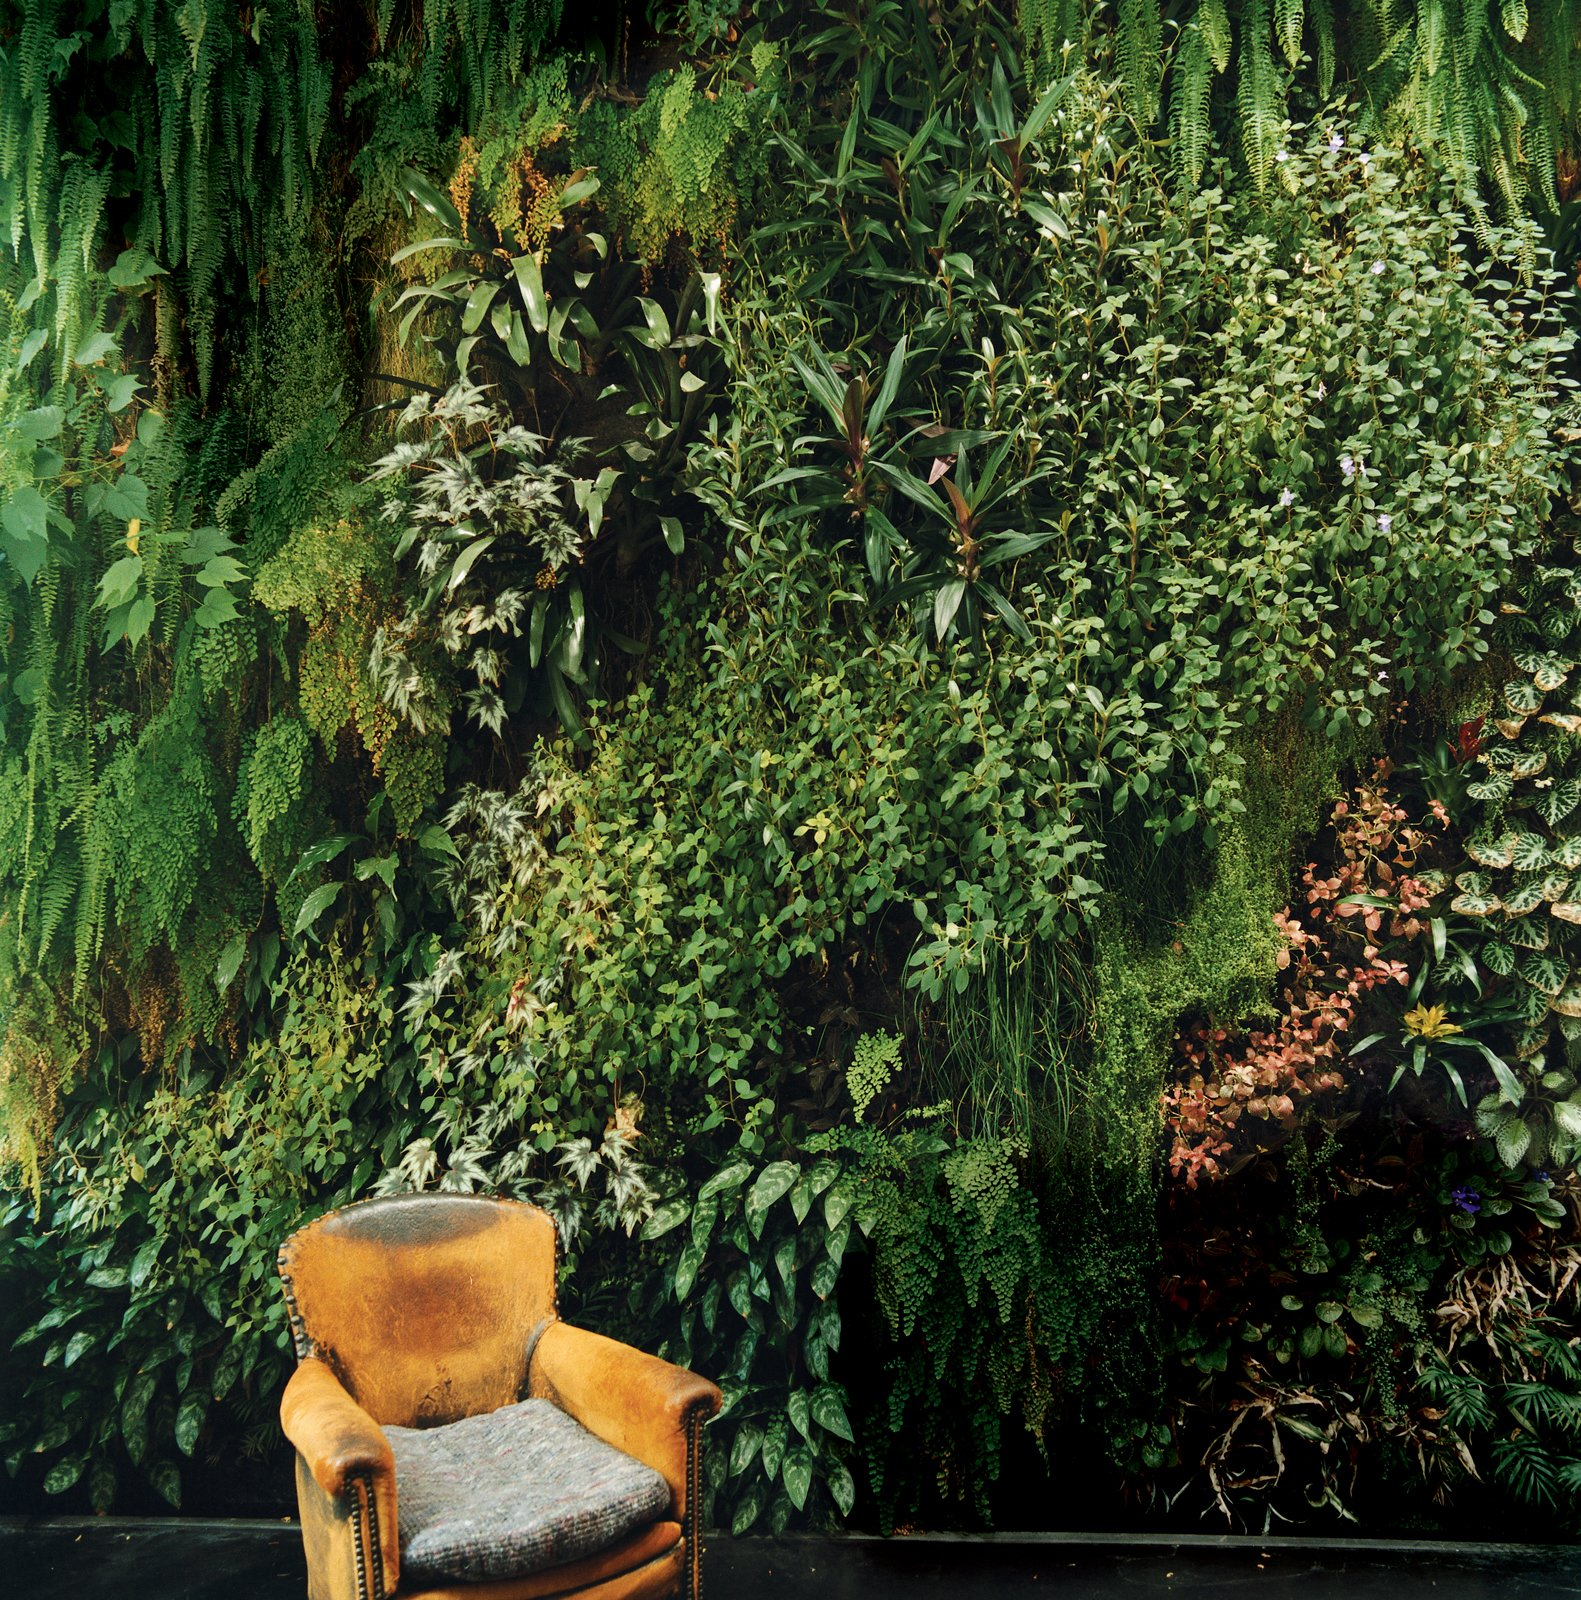 The indoor garden wall Patrick Blanc created for his friends the Dimanches is so lush, it's almost as if someone has plopped an easy chair down in the middle of a forest.  Lush Life by Heather Corcoran from Garden Apartment